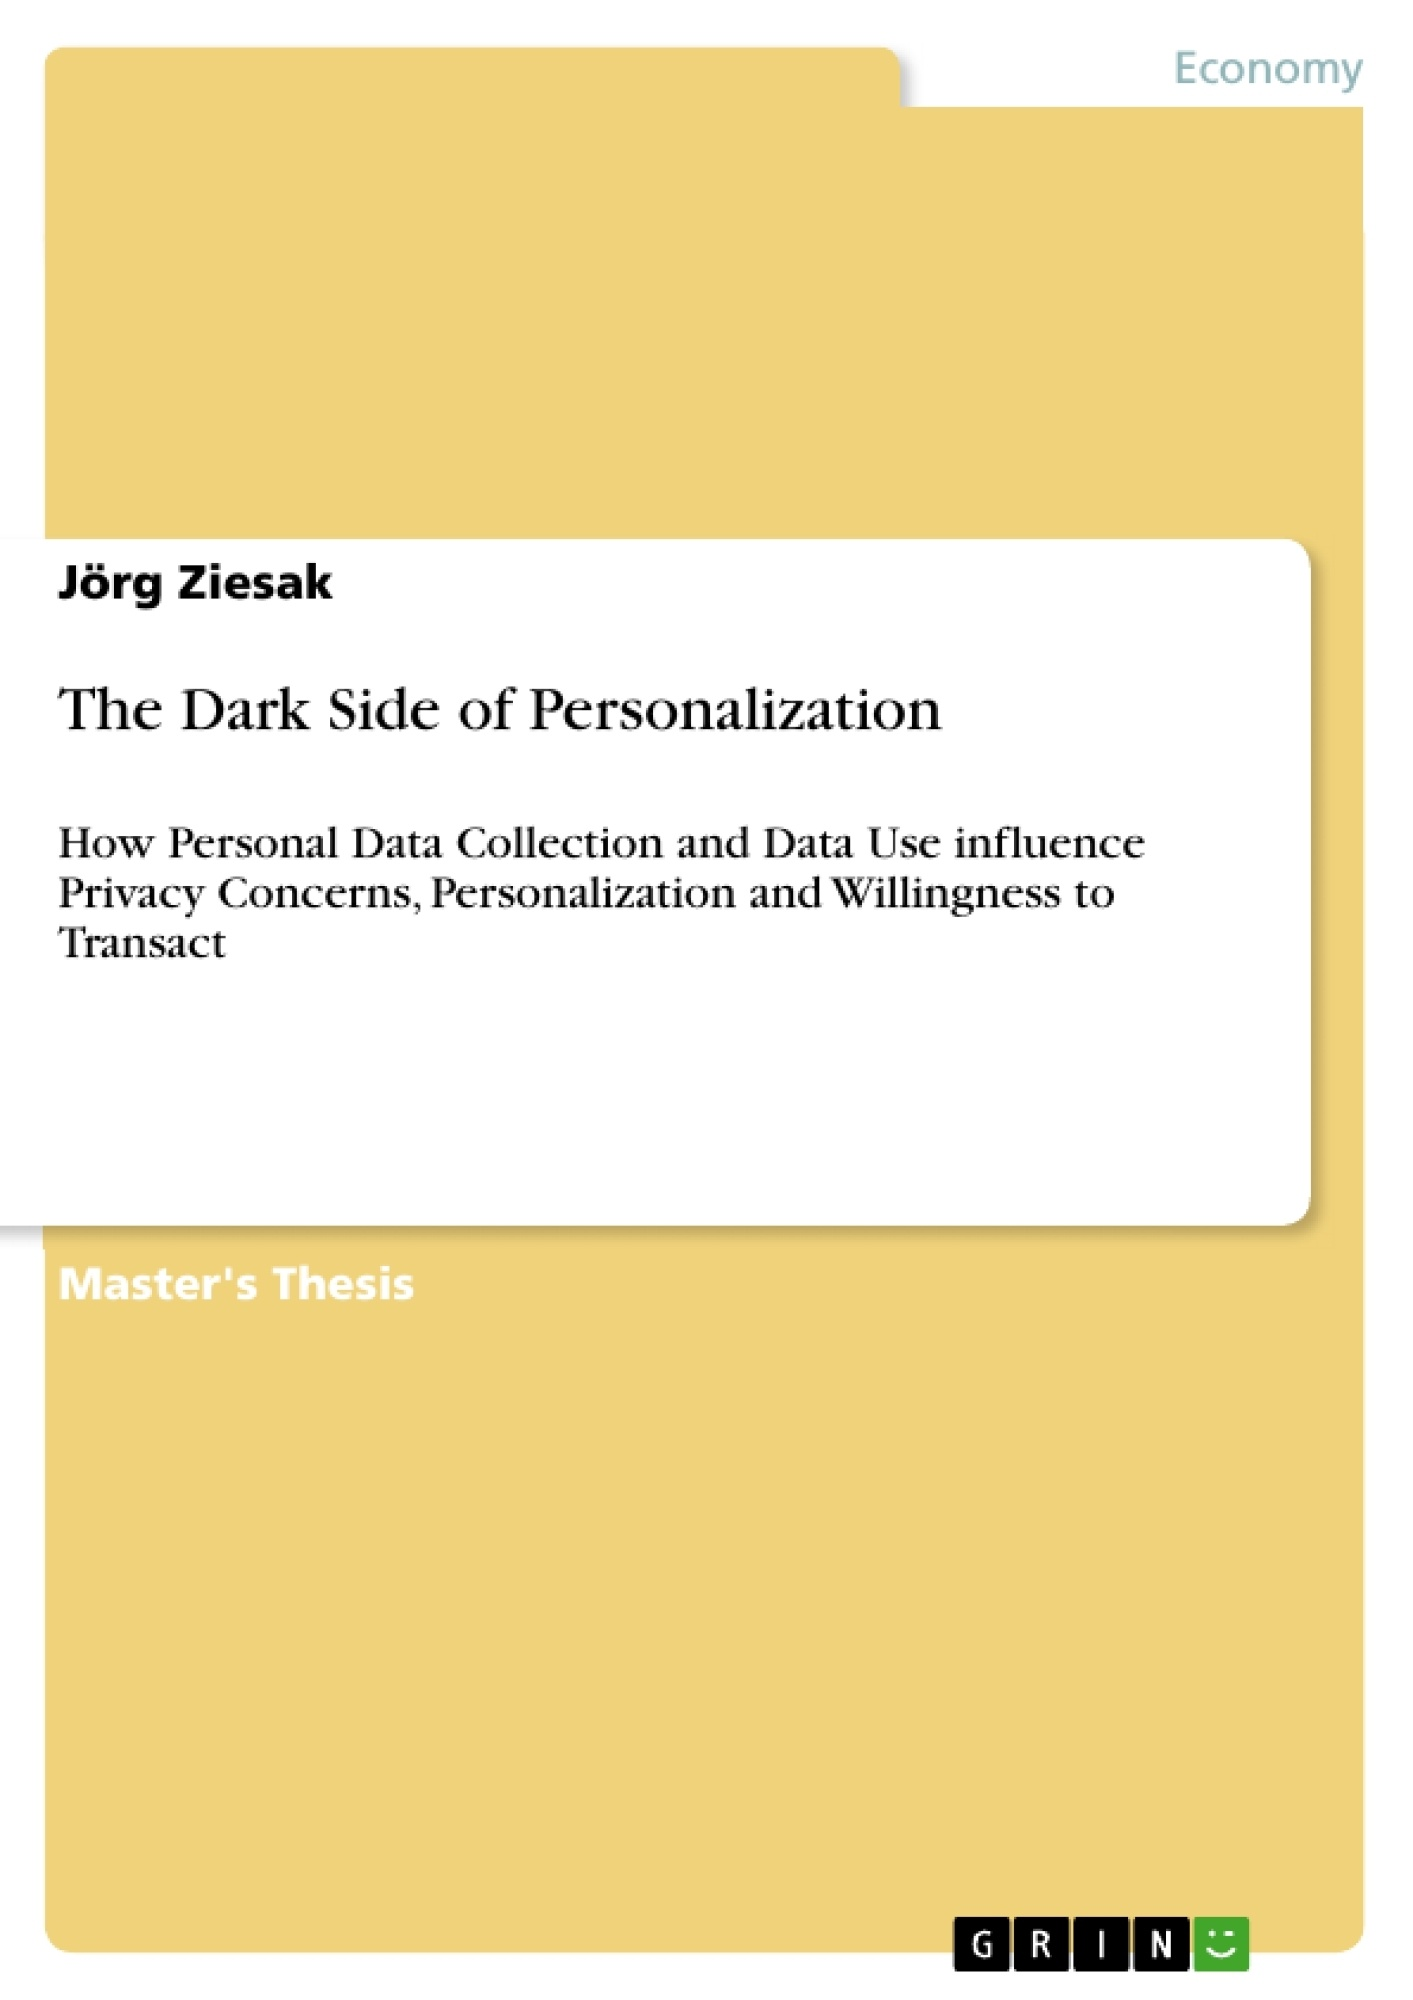 Title: The Dark Side of Personalization